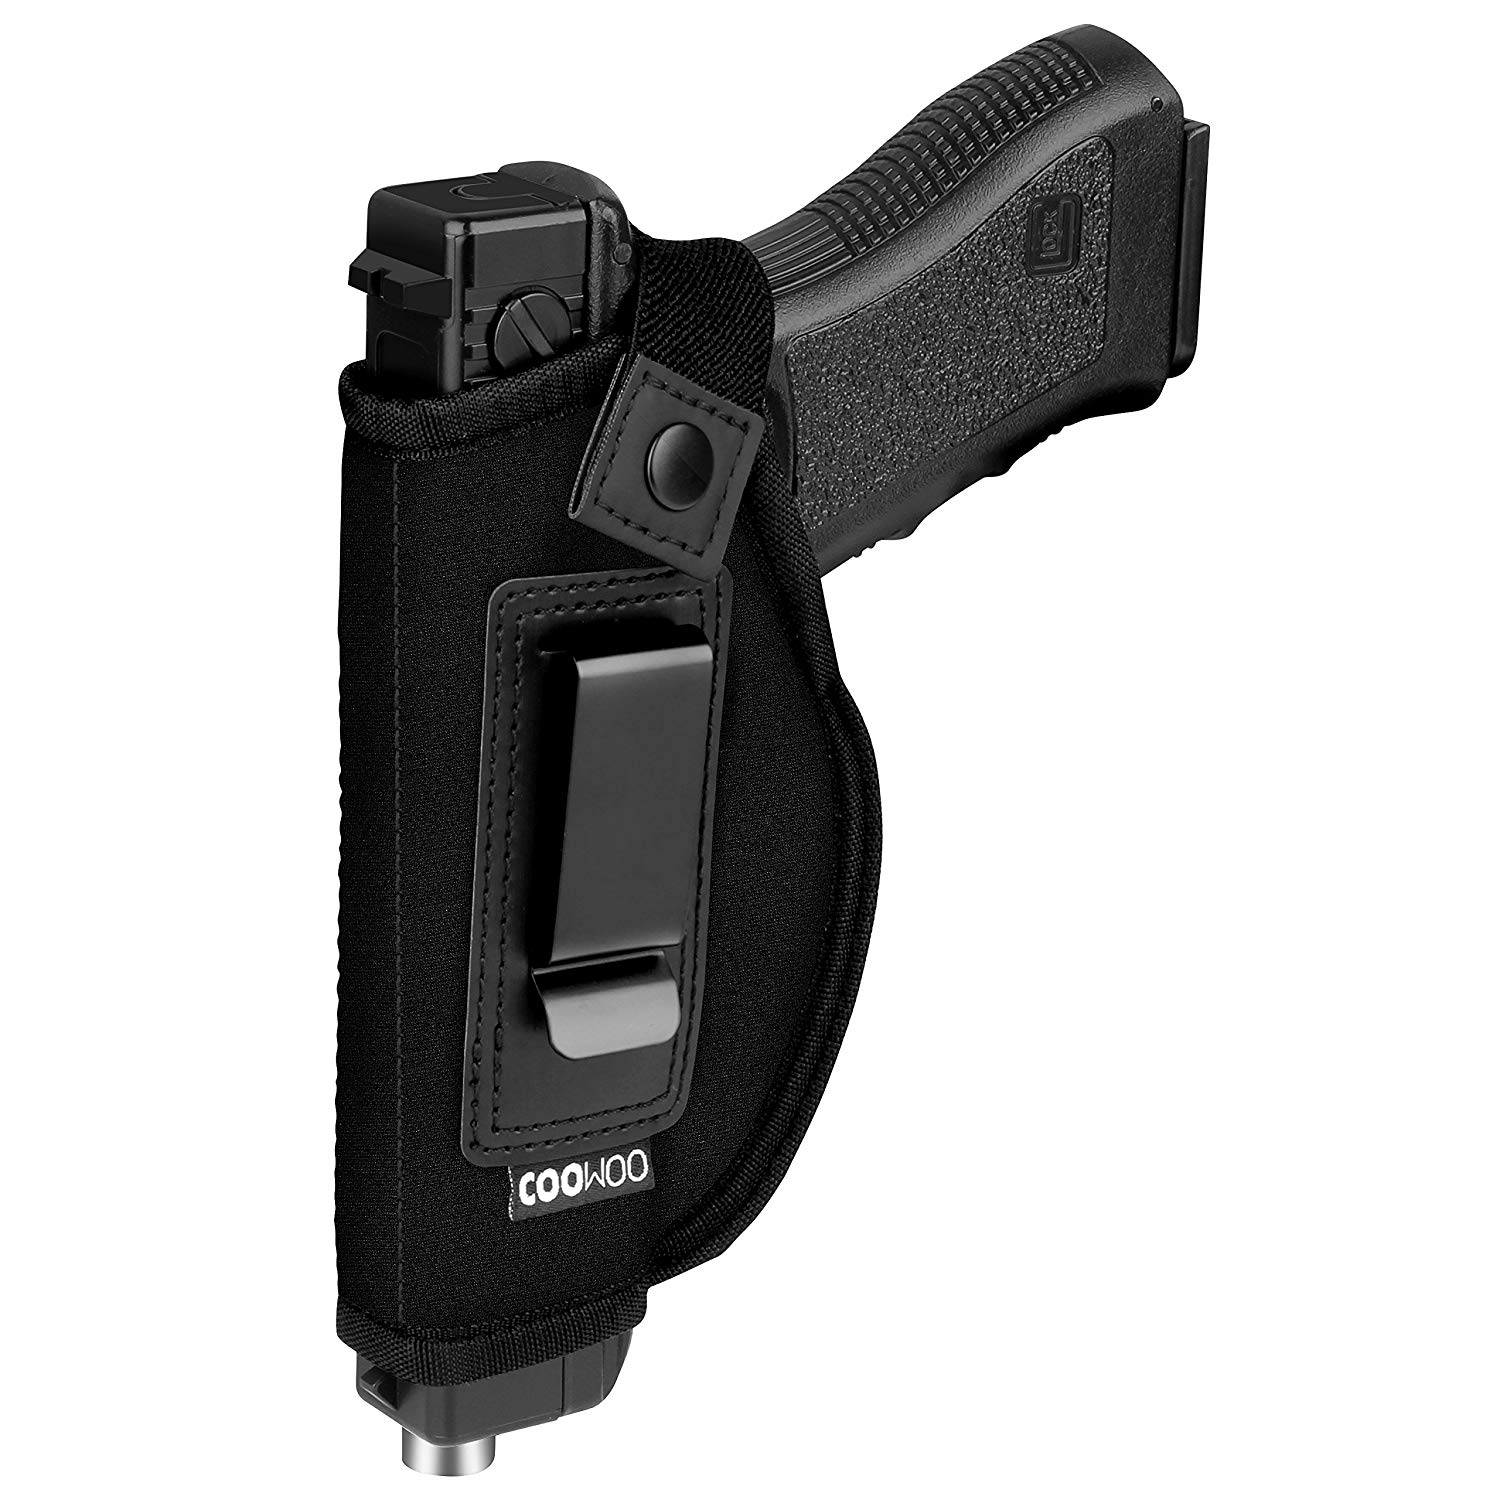 UP UPKJ IWB Gun Holster For Concealed Carry | Inside or Outside The Waistband Holster | Gun Concealed Carry IWB Holster | Fits S&W M&P Shield/GLOCK 26 27 29 30 33 42 43/Springfield XD XDS/Ruger LC9